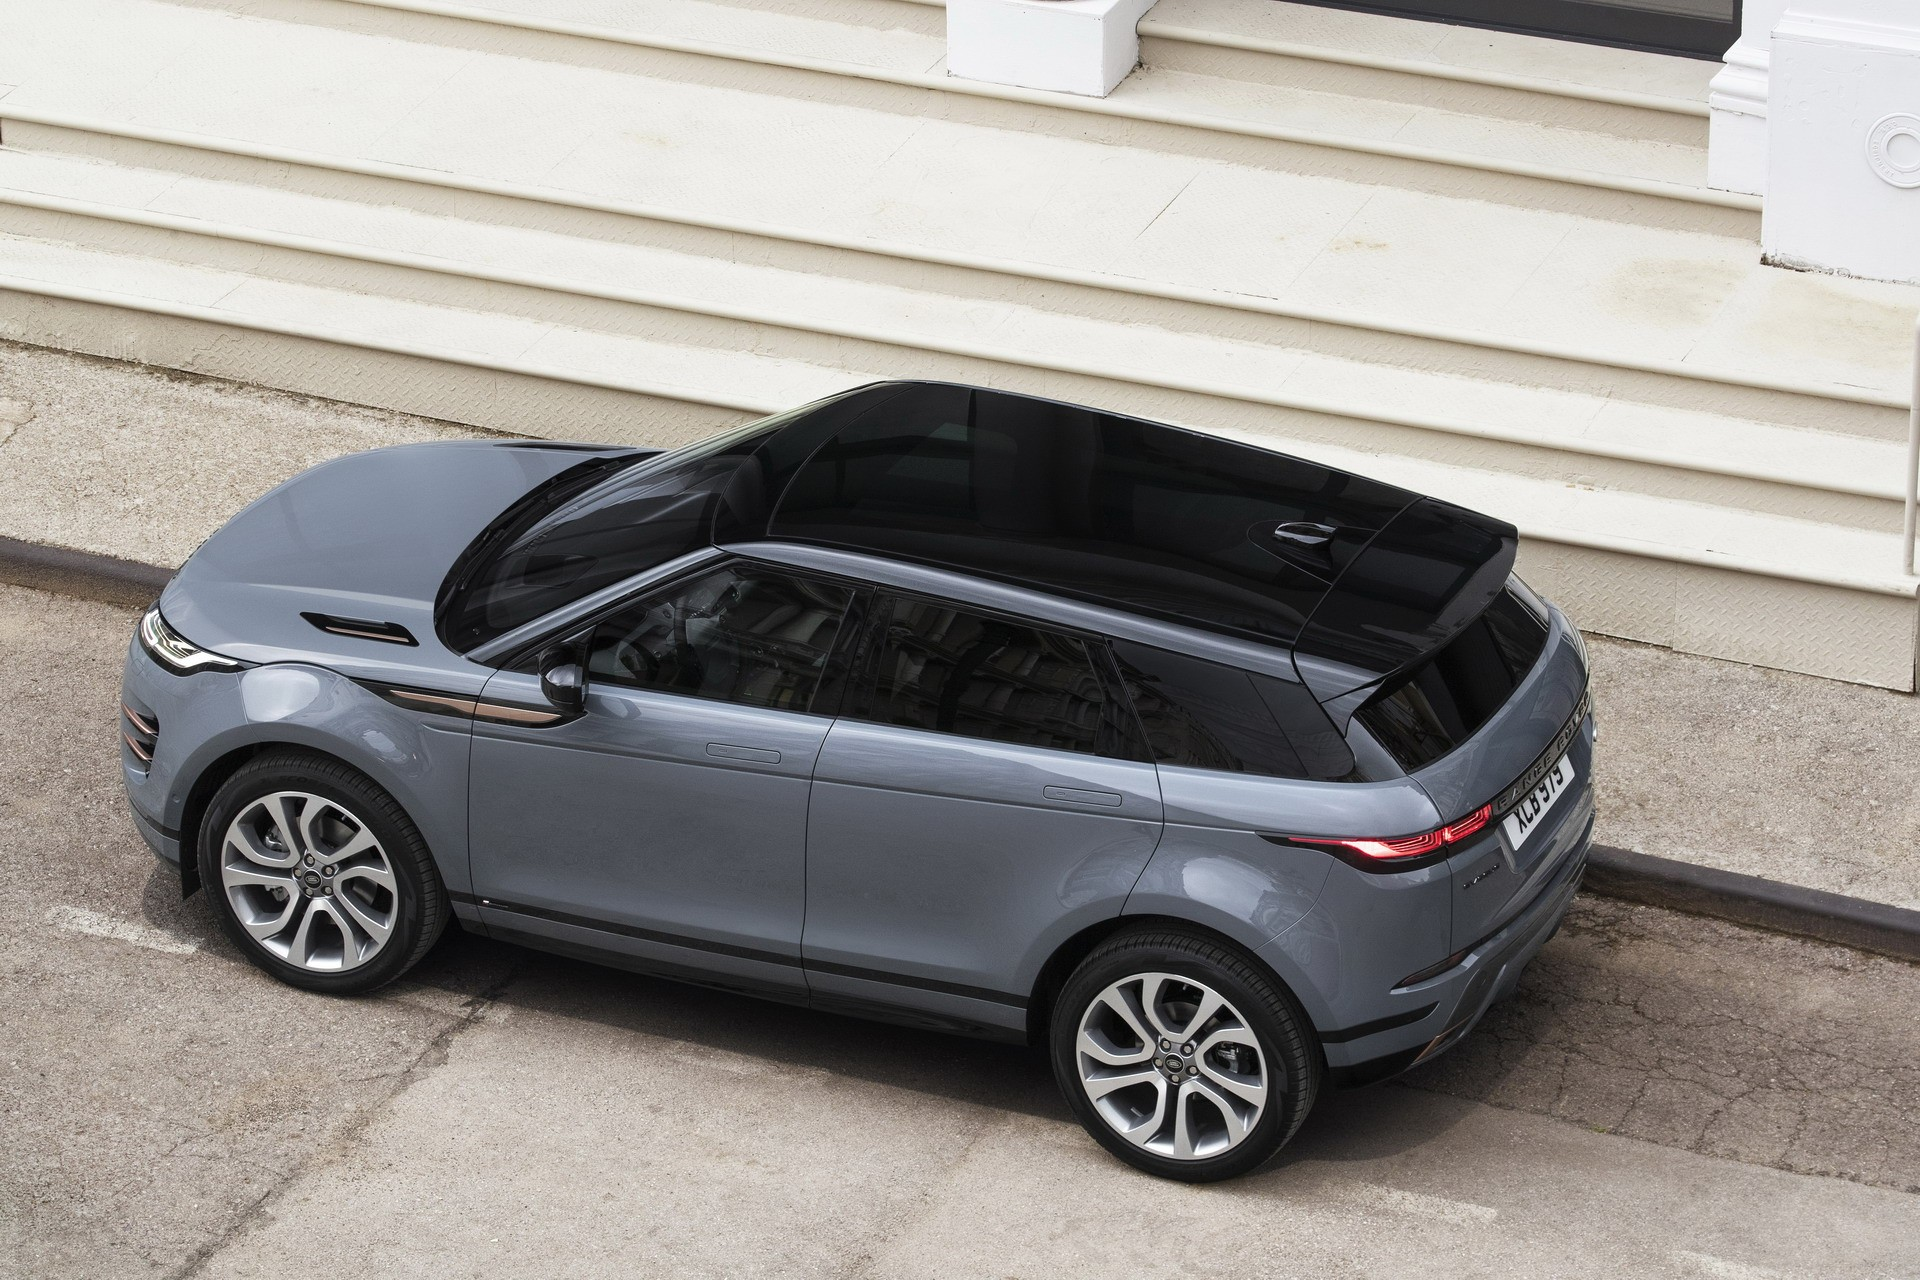 Land Rover Launches Online Configurator For 2020 Range